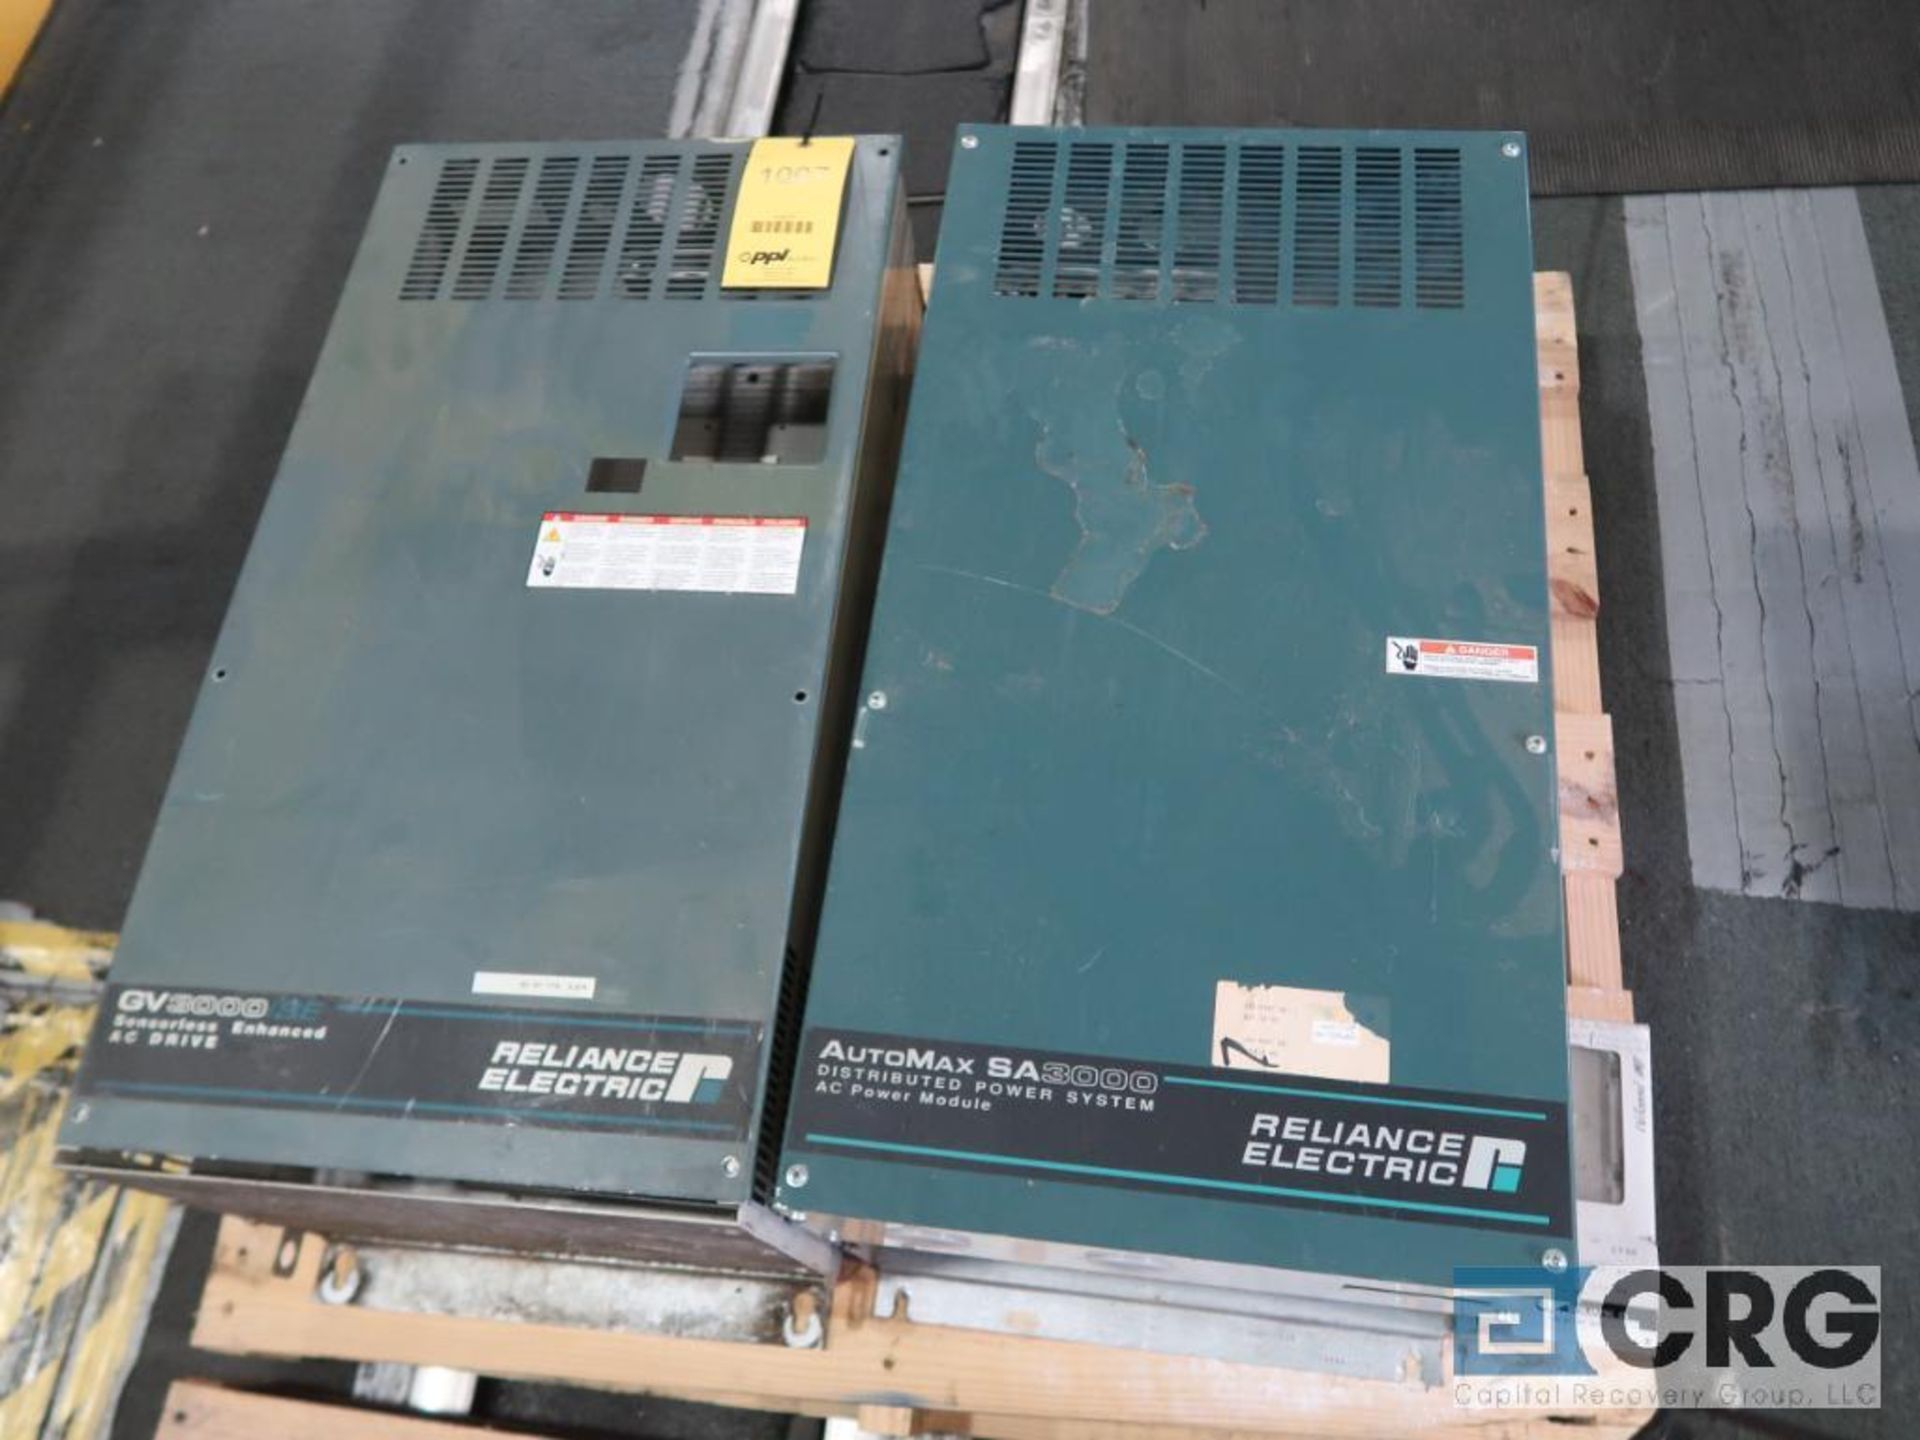 Lot of (3) Reliance AutoMarsa 3000 AC power module, IO chassis (Finish Building)